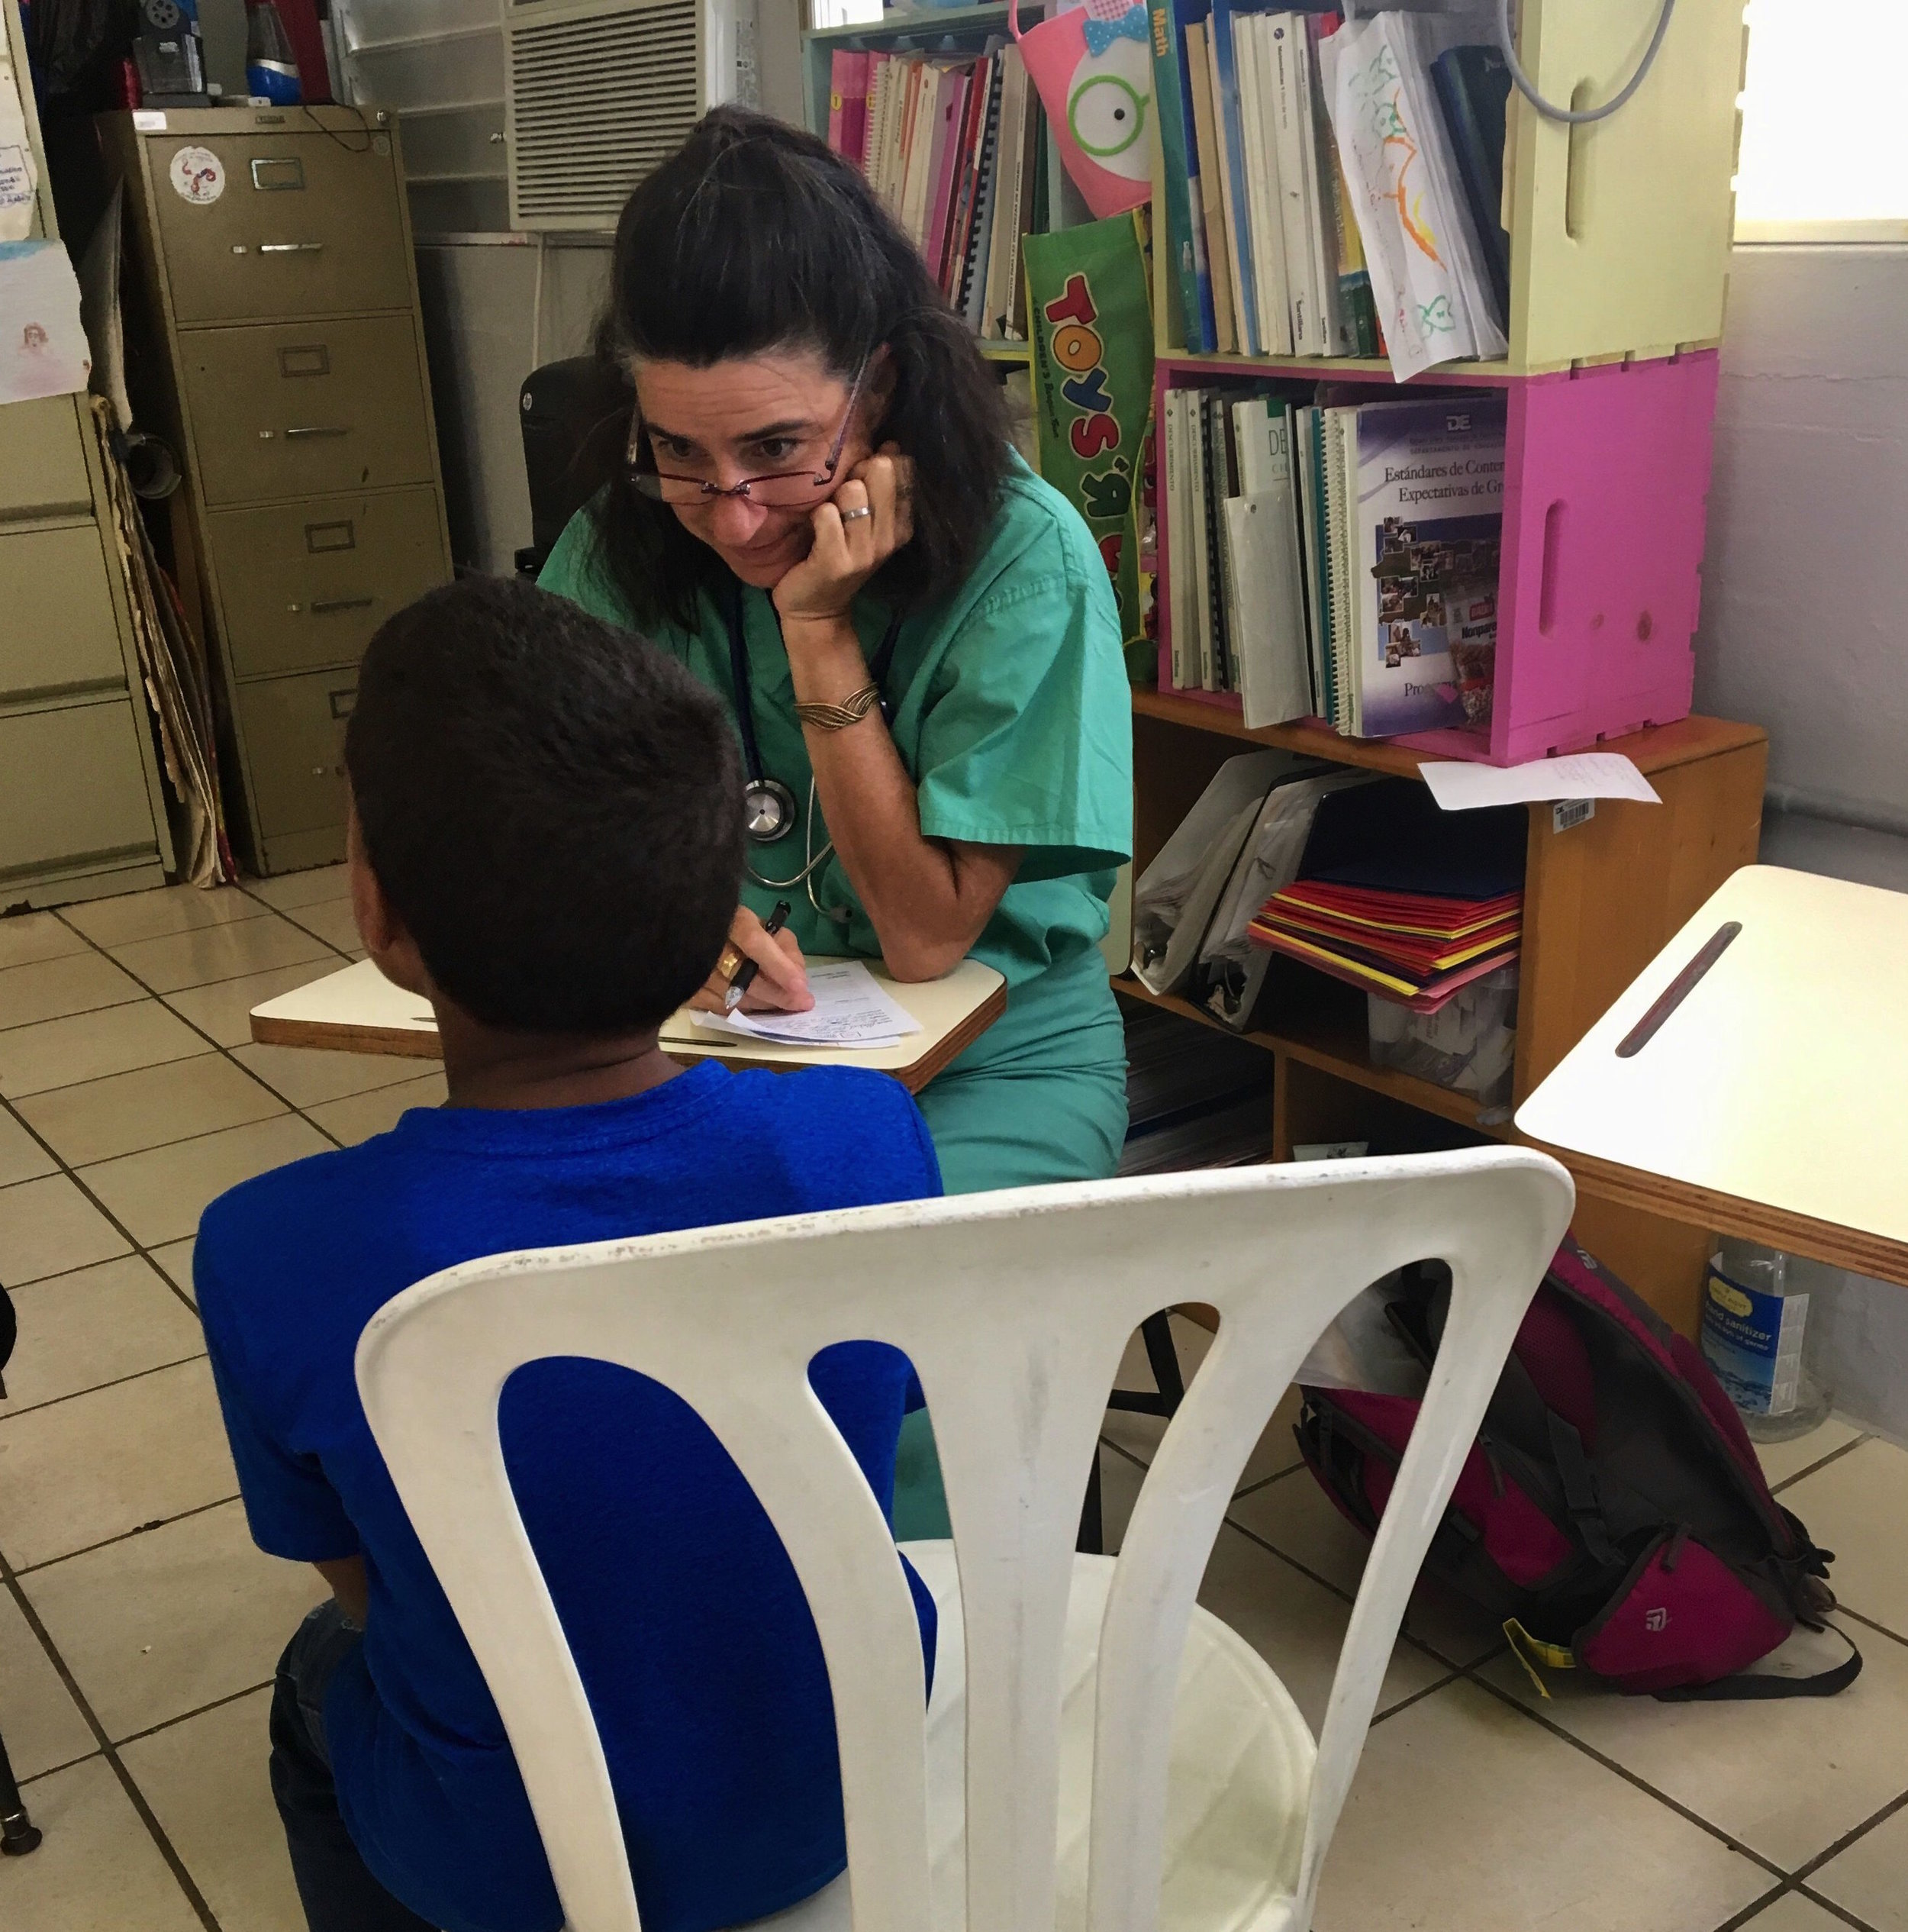 IMR volunteer, Angela Baumeister, RPAC, listens intently to her young patient